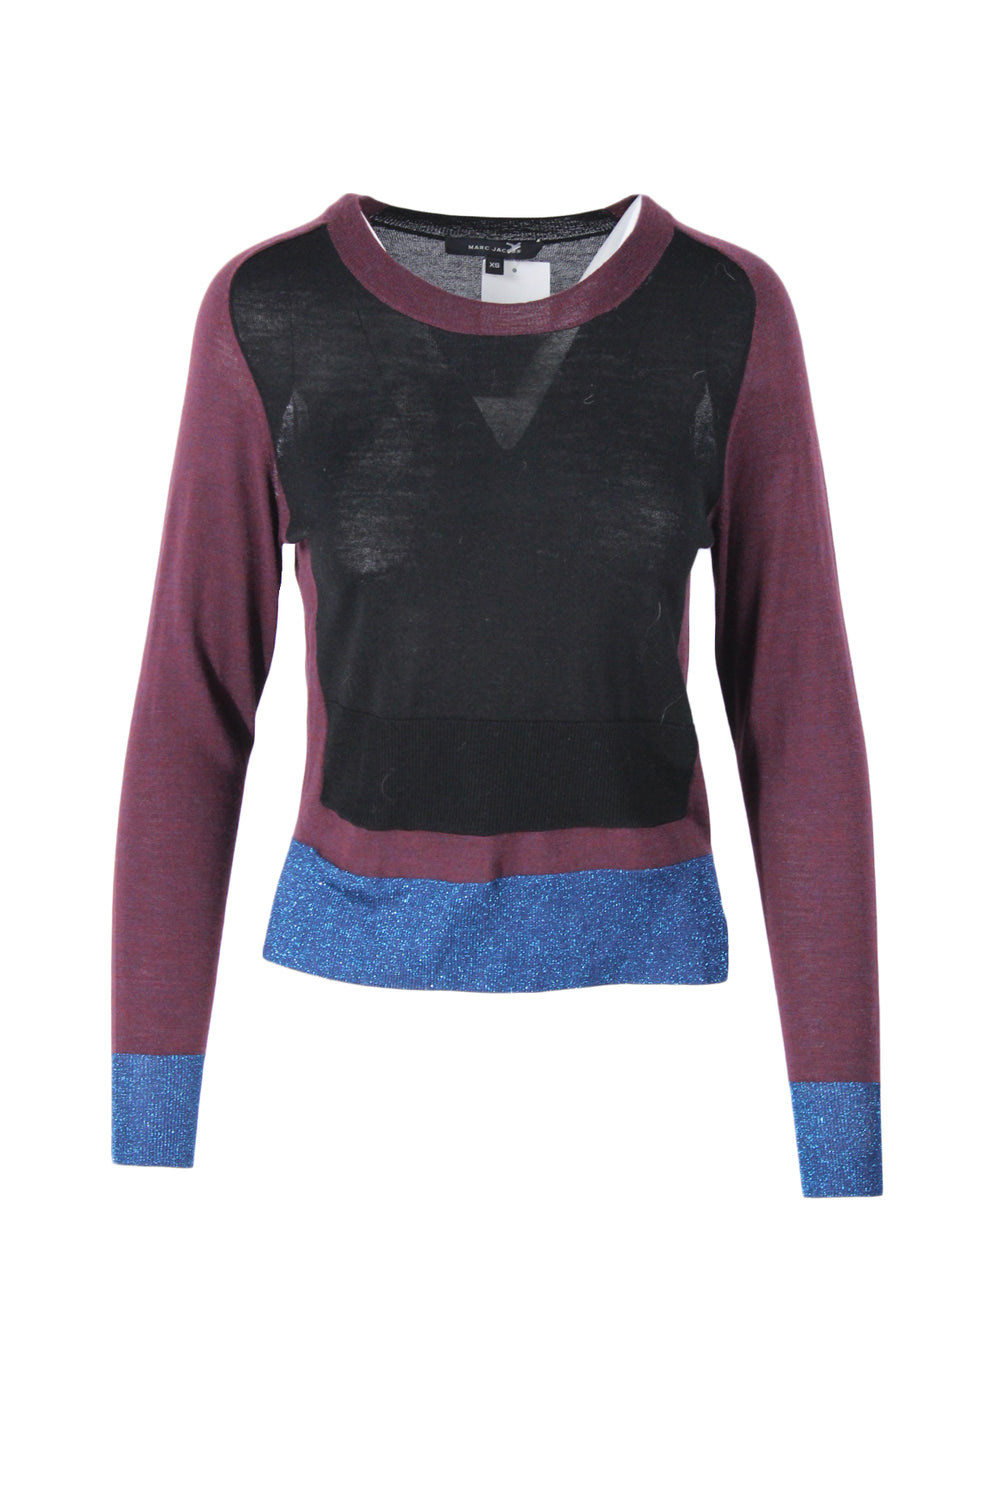 marc jacobs color blocked light weight sweater. featuring metallic rib knit hem; and cutouts at the back of shoulder.